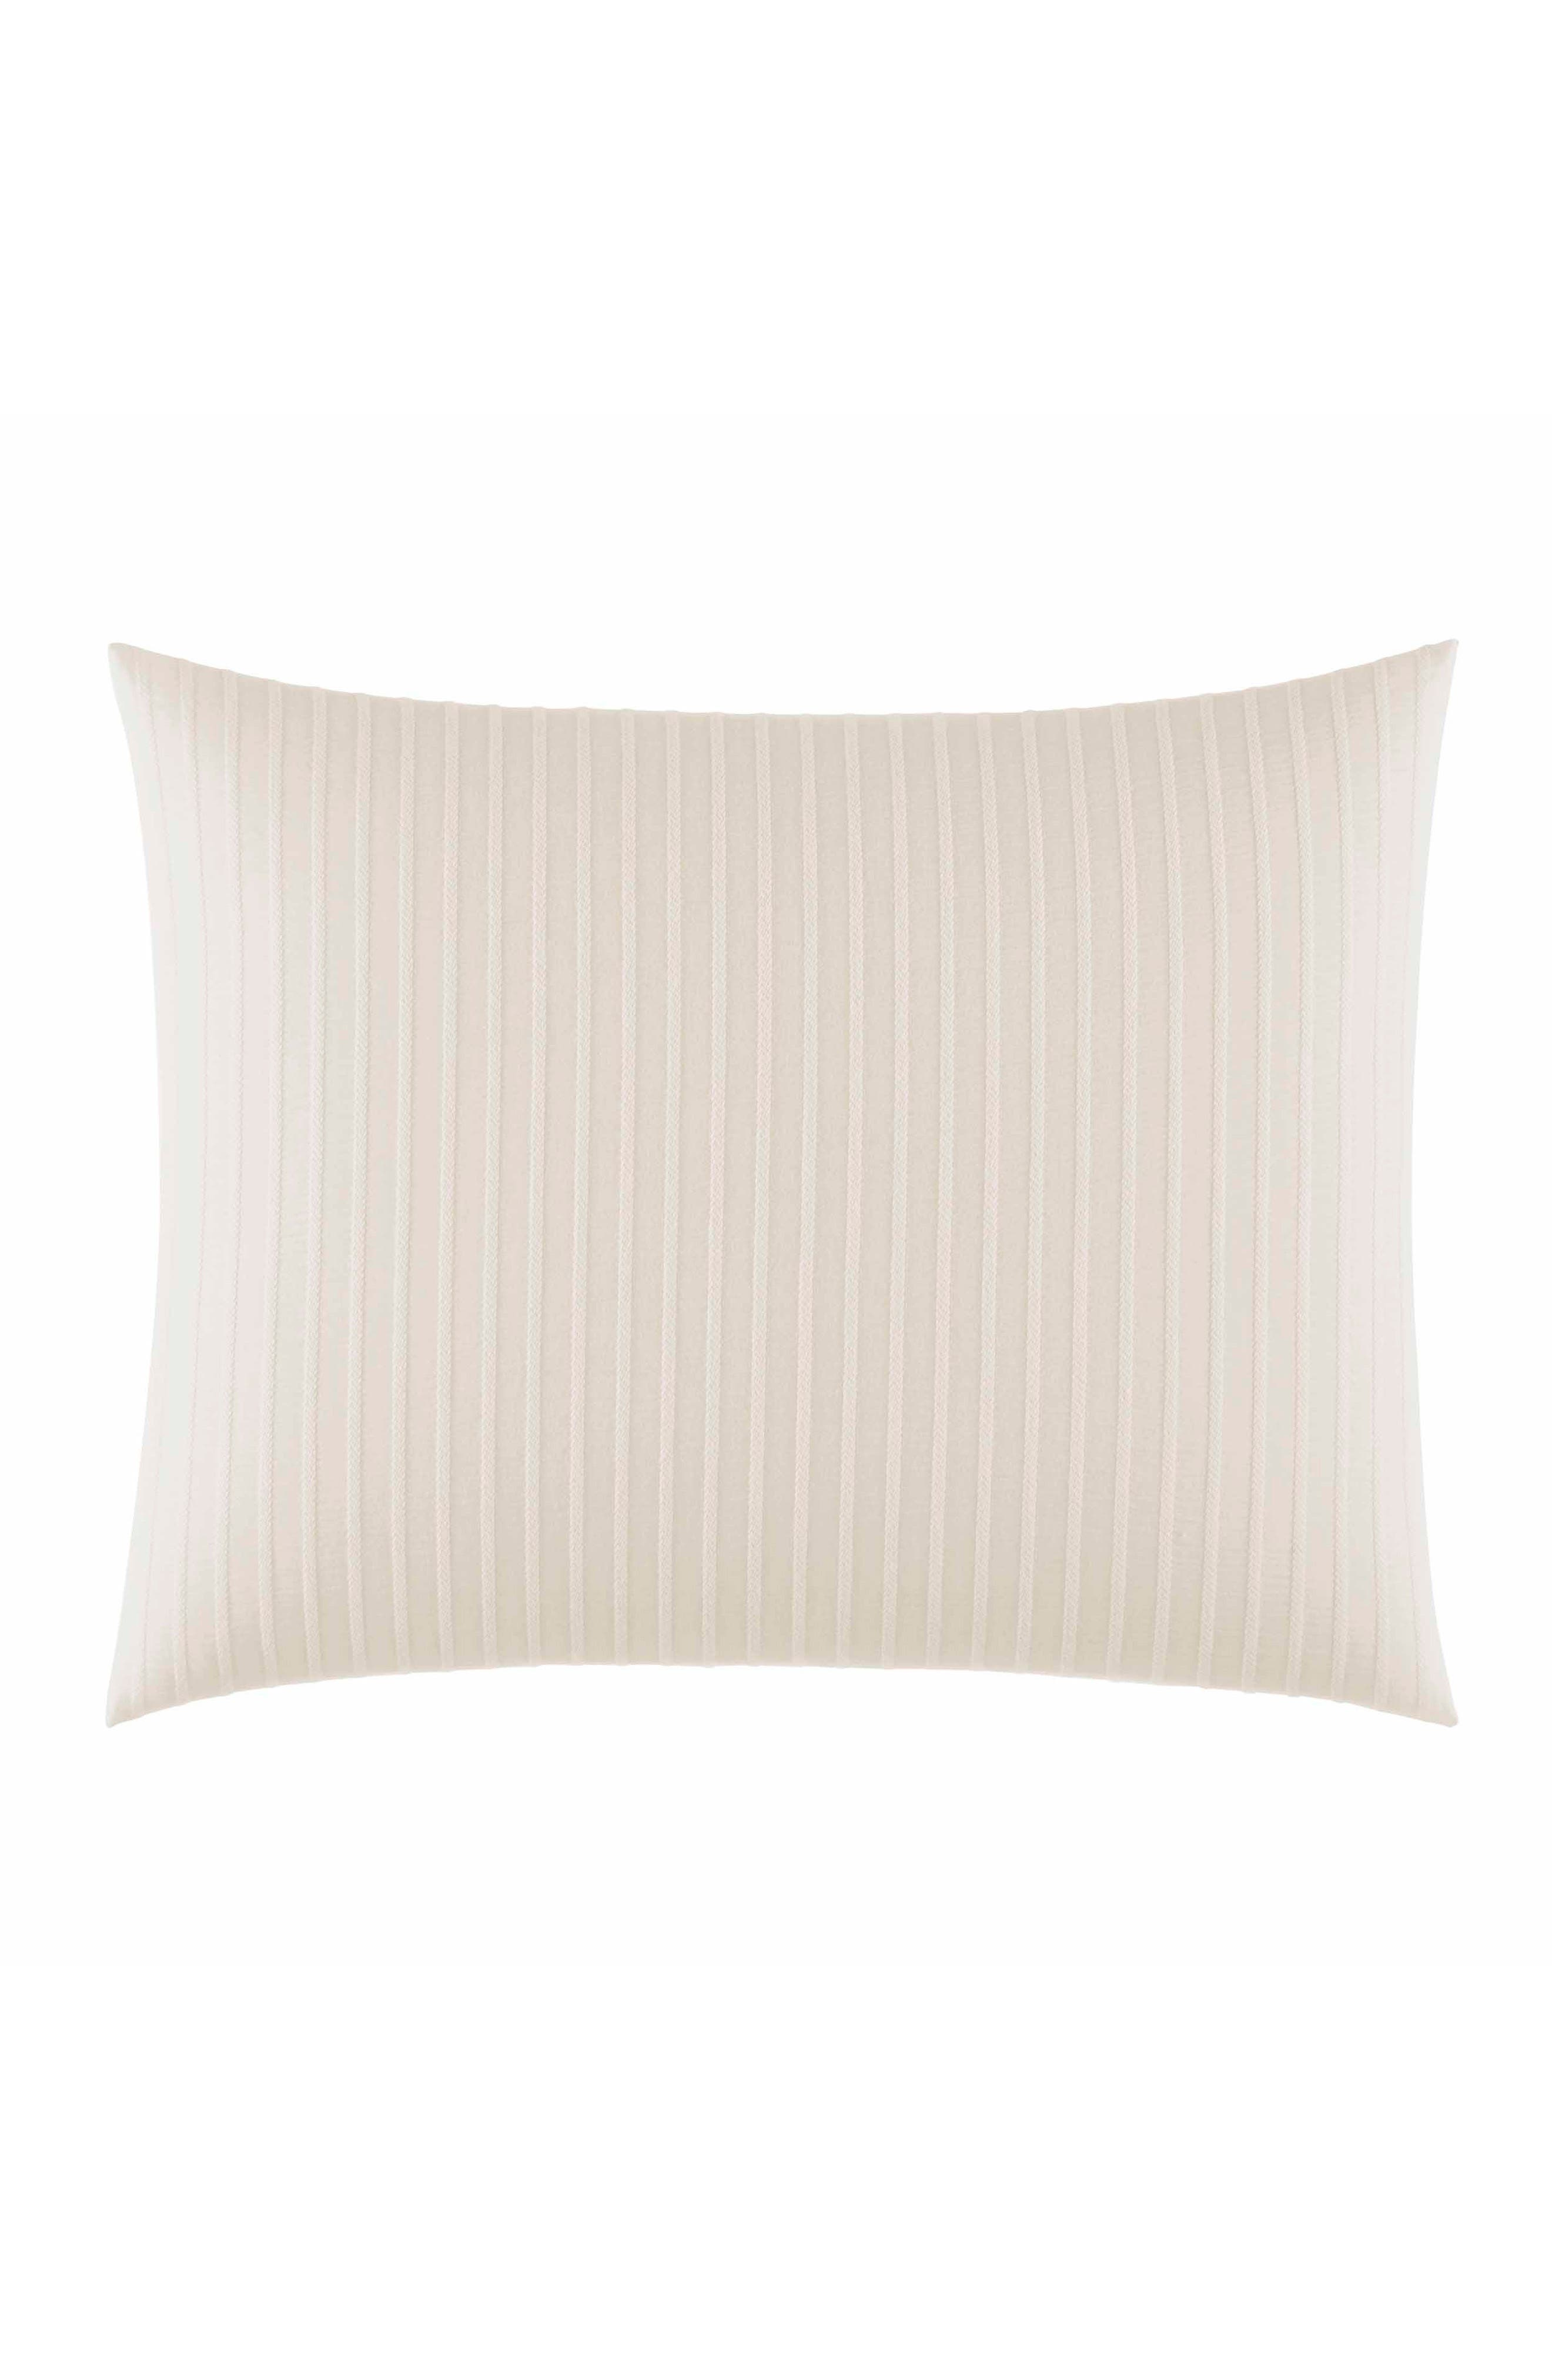 TOMMY BAHAMA St. Armand's Breakfast Accent Pillow, Main, color, ALABASTER